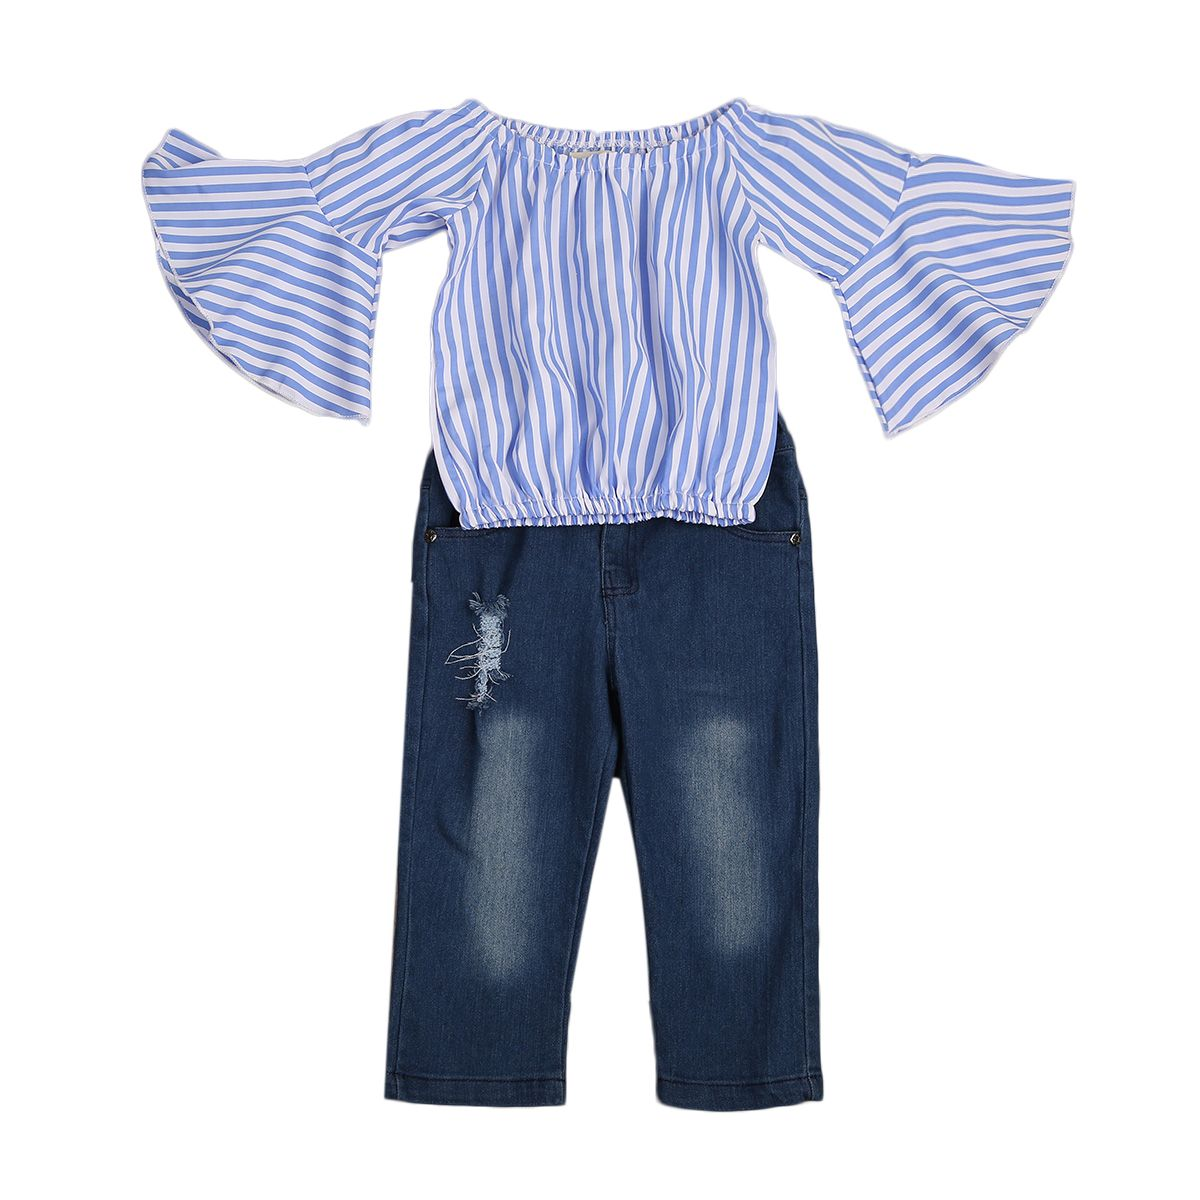 177ca16c3d4aa ... directly from China baby girl outfit Suppliers  Fashion Kids Baby Girls  Outfits Off Shoulder Striped Blouse Tops T-shirt+Denim Jeans Pants Clothes  Set